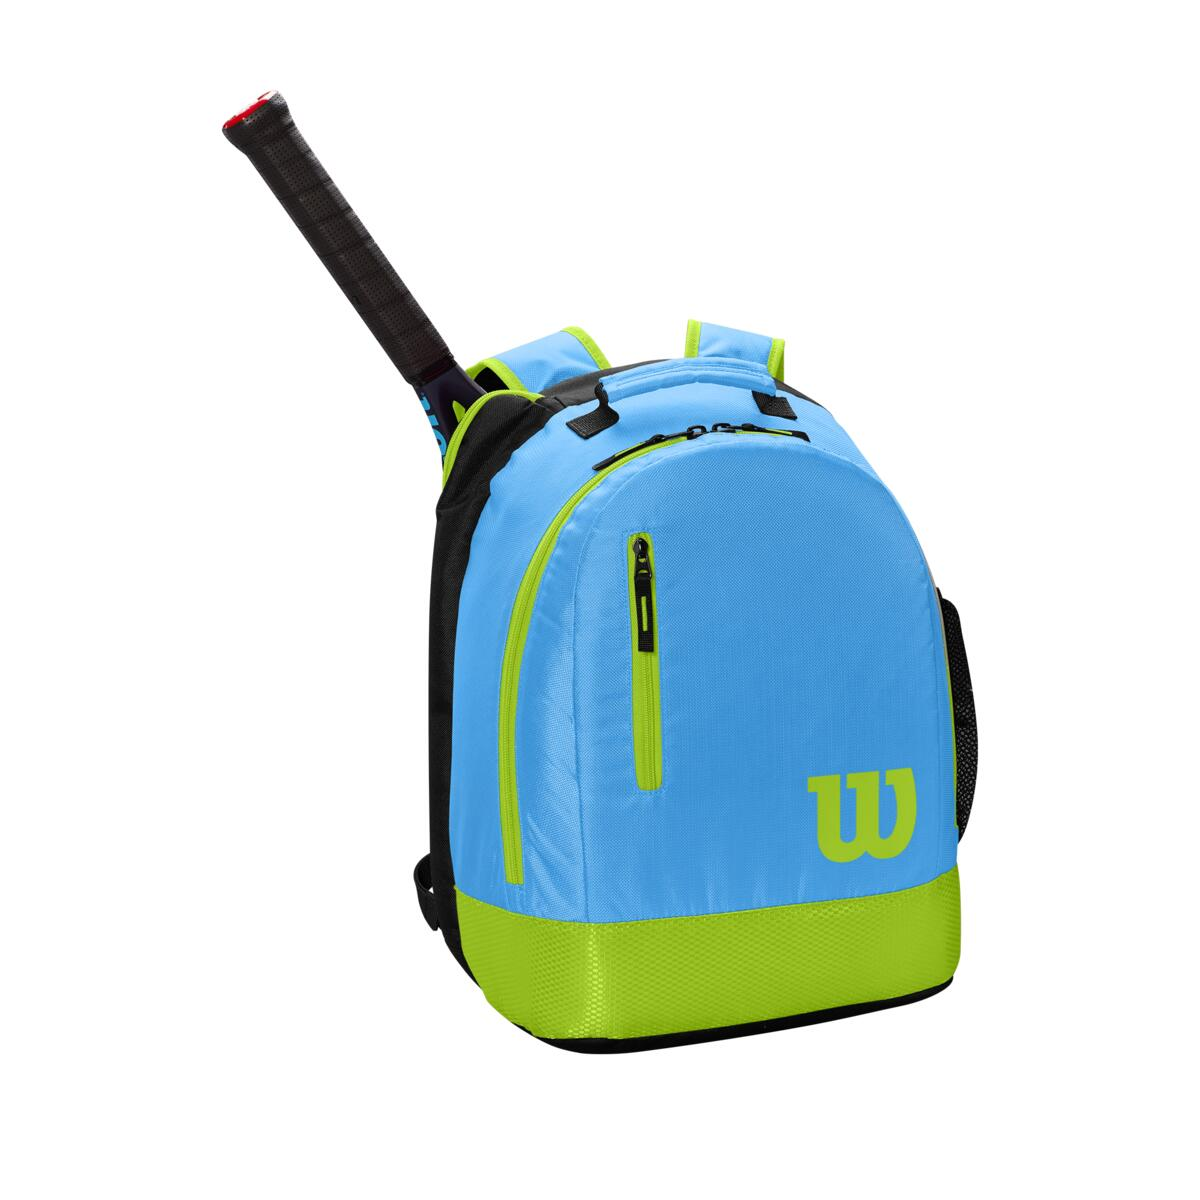 WR8000003_1_JUNIOR_BACKPACK_BL_BU_YG_Front_wRackets.png.cq5dam.web.1200.1200